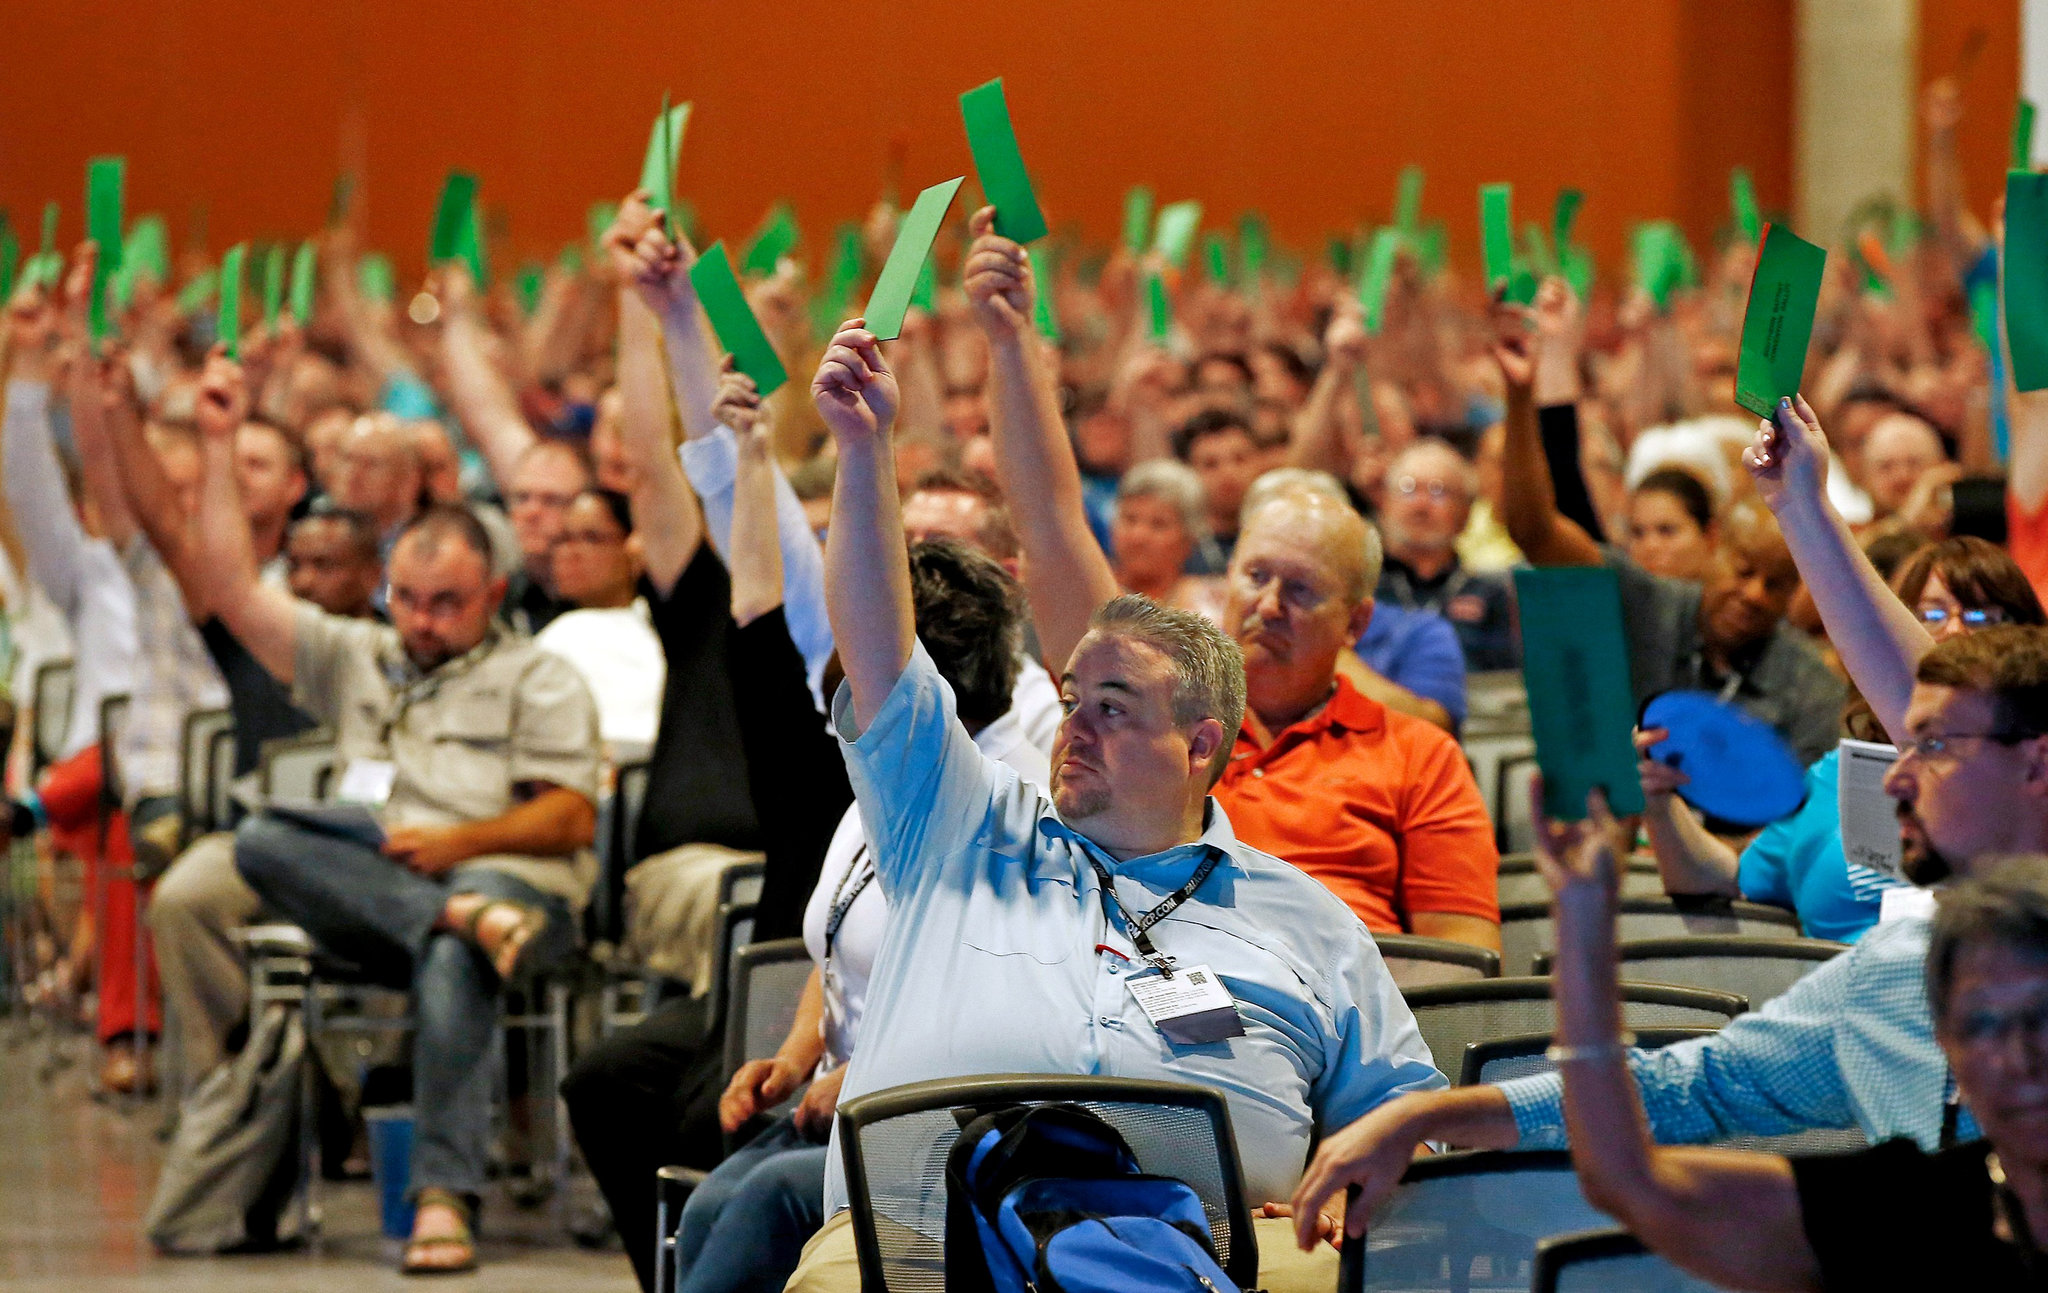 """Southern Baptists voting to formally condemn the political movement known as the """"alt-right,"""" at their national meeting in Phoenix in June.Credit: Ross D. Franklin/Associated Press"""